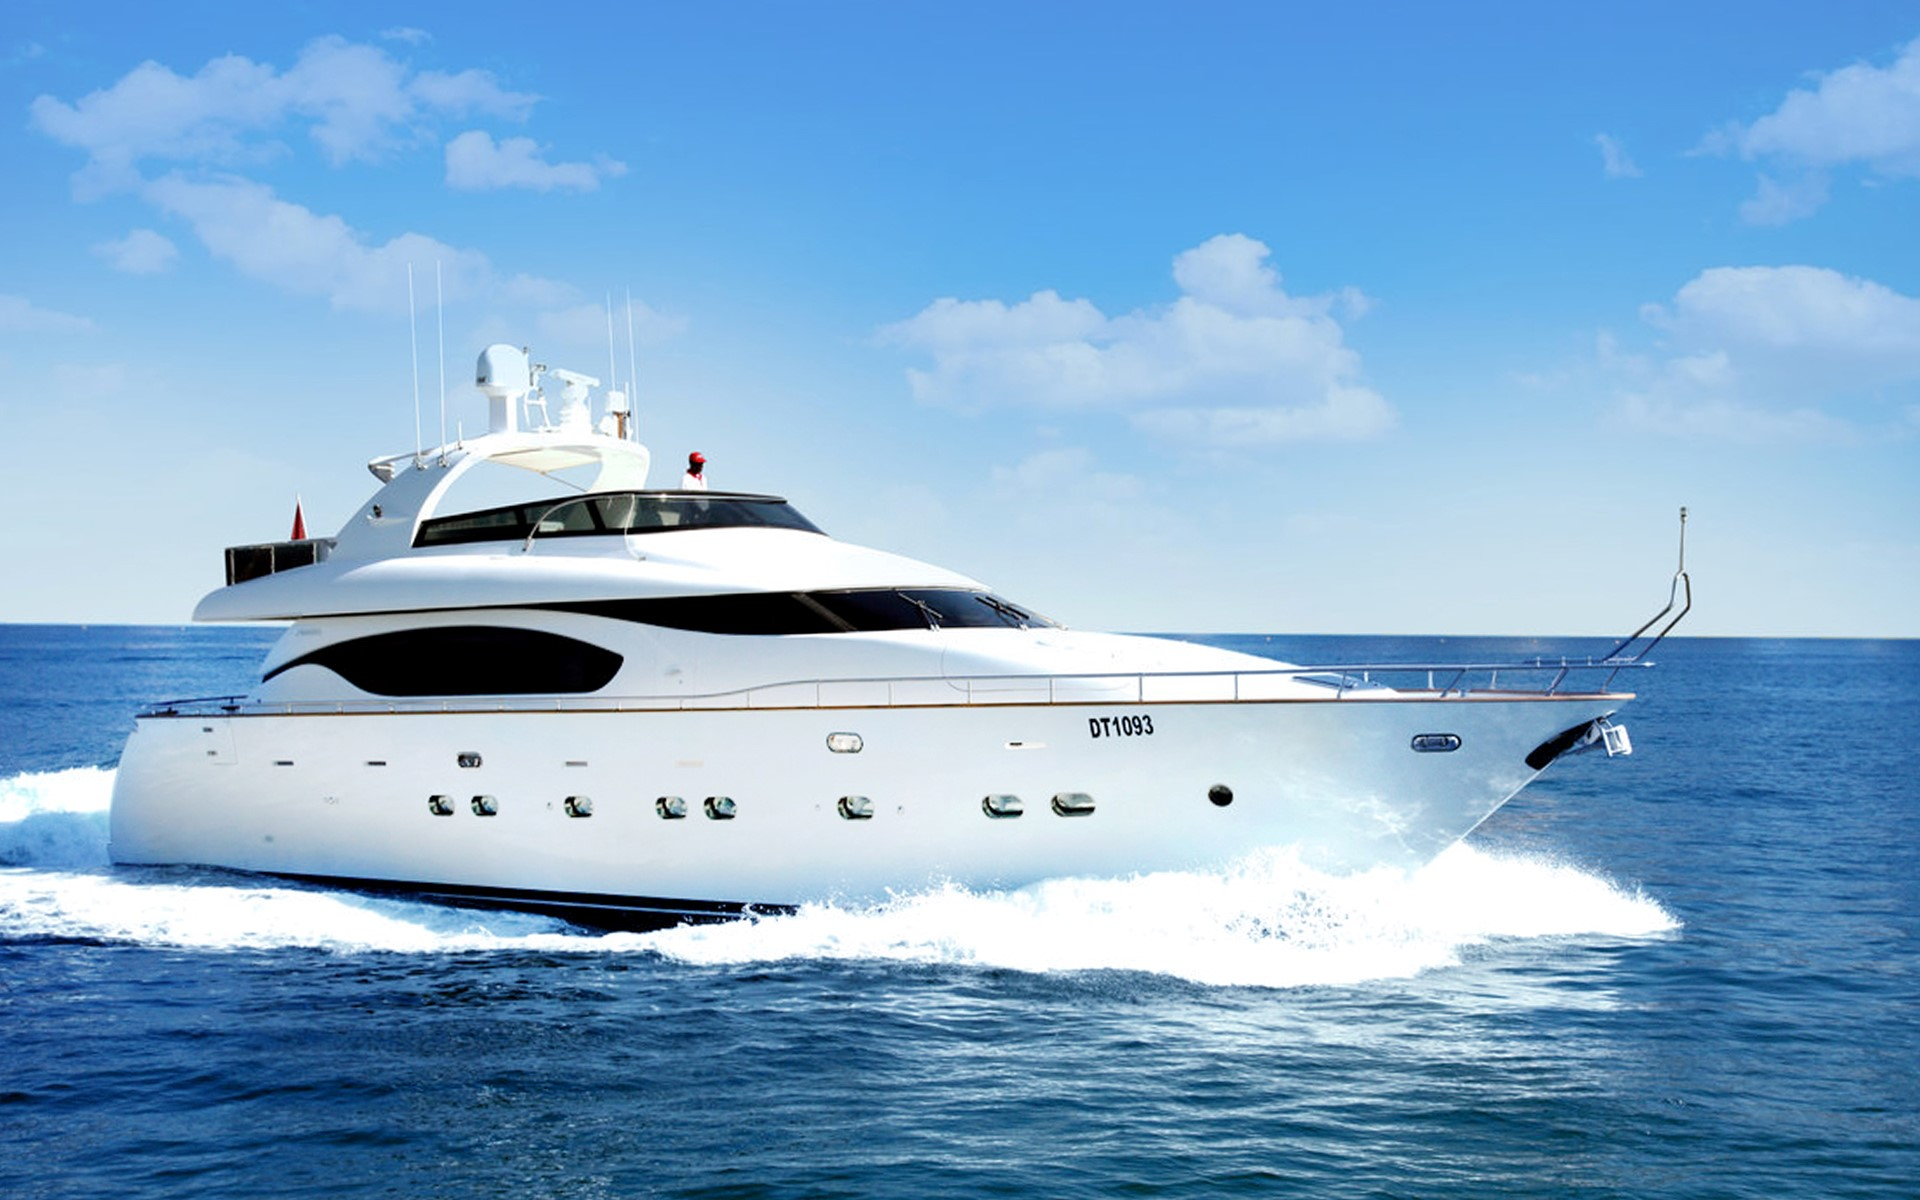 78ft yacht on waters of dubai - yachts for rent in dubai